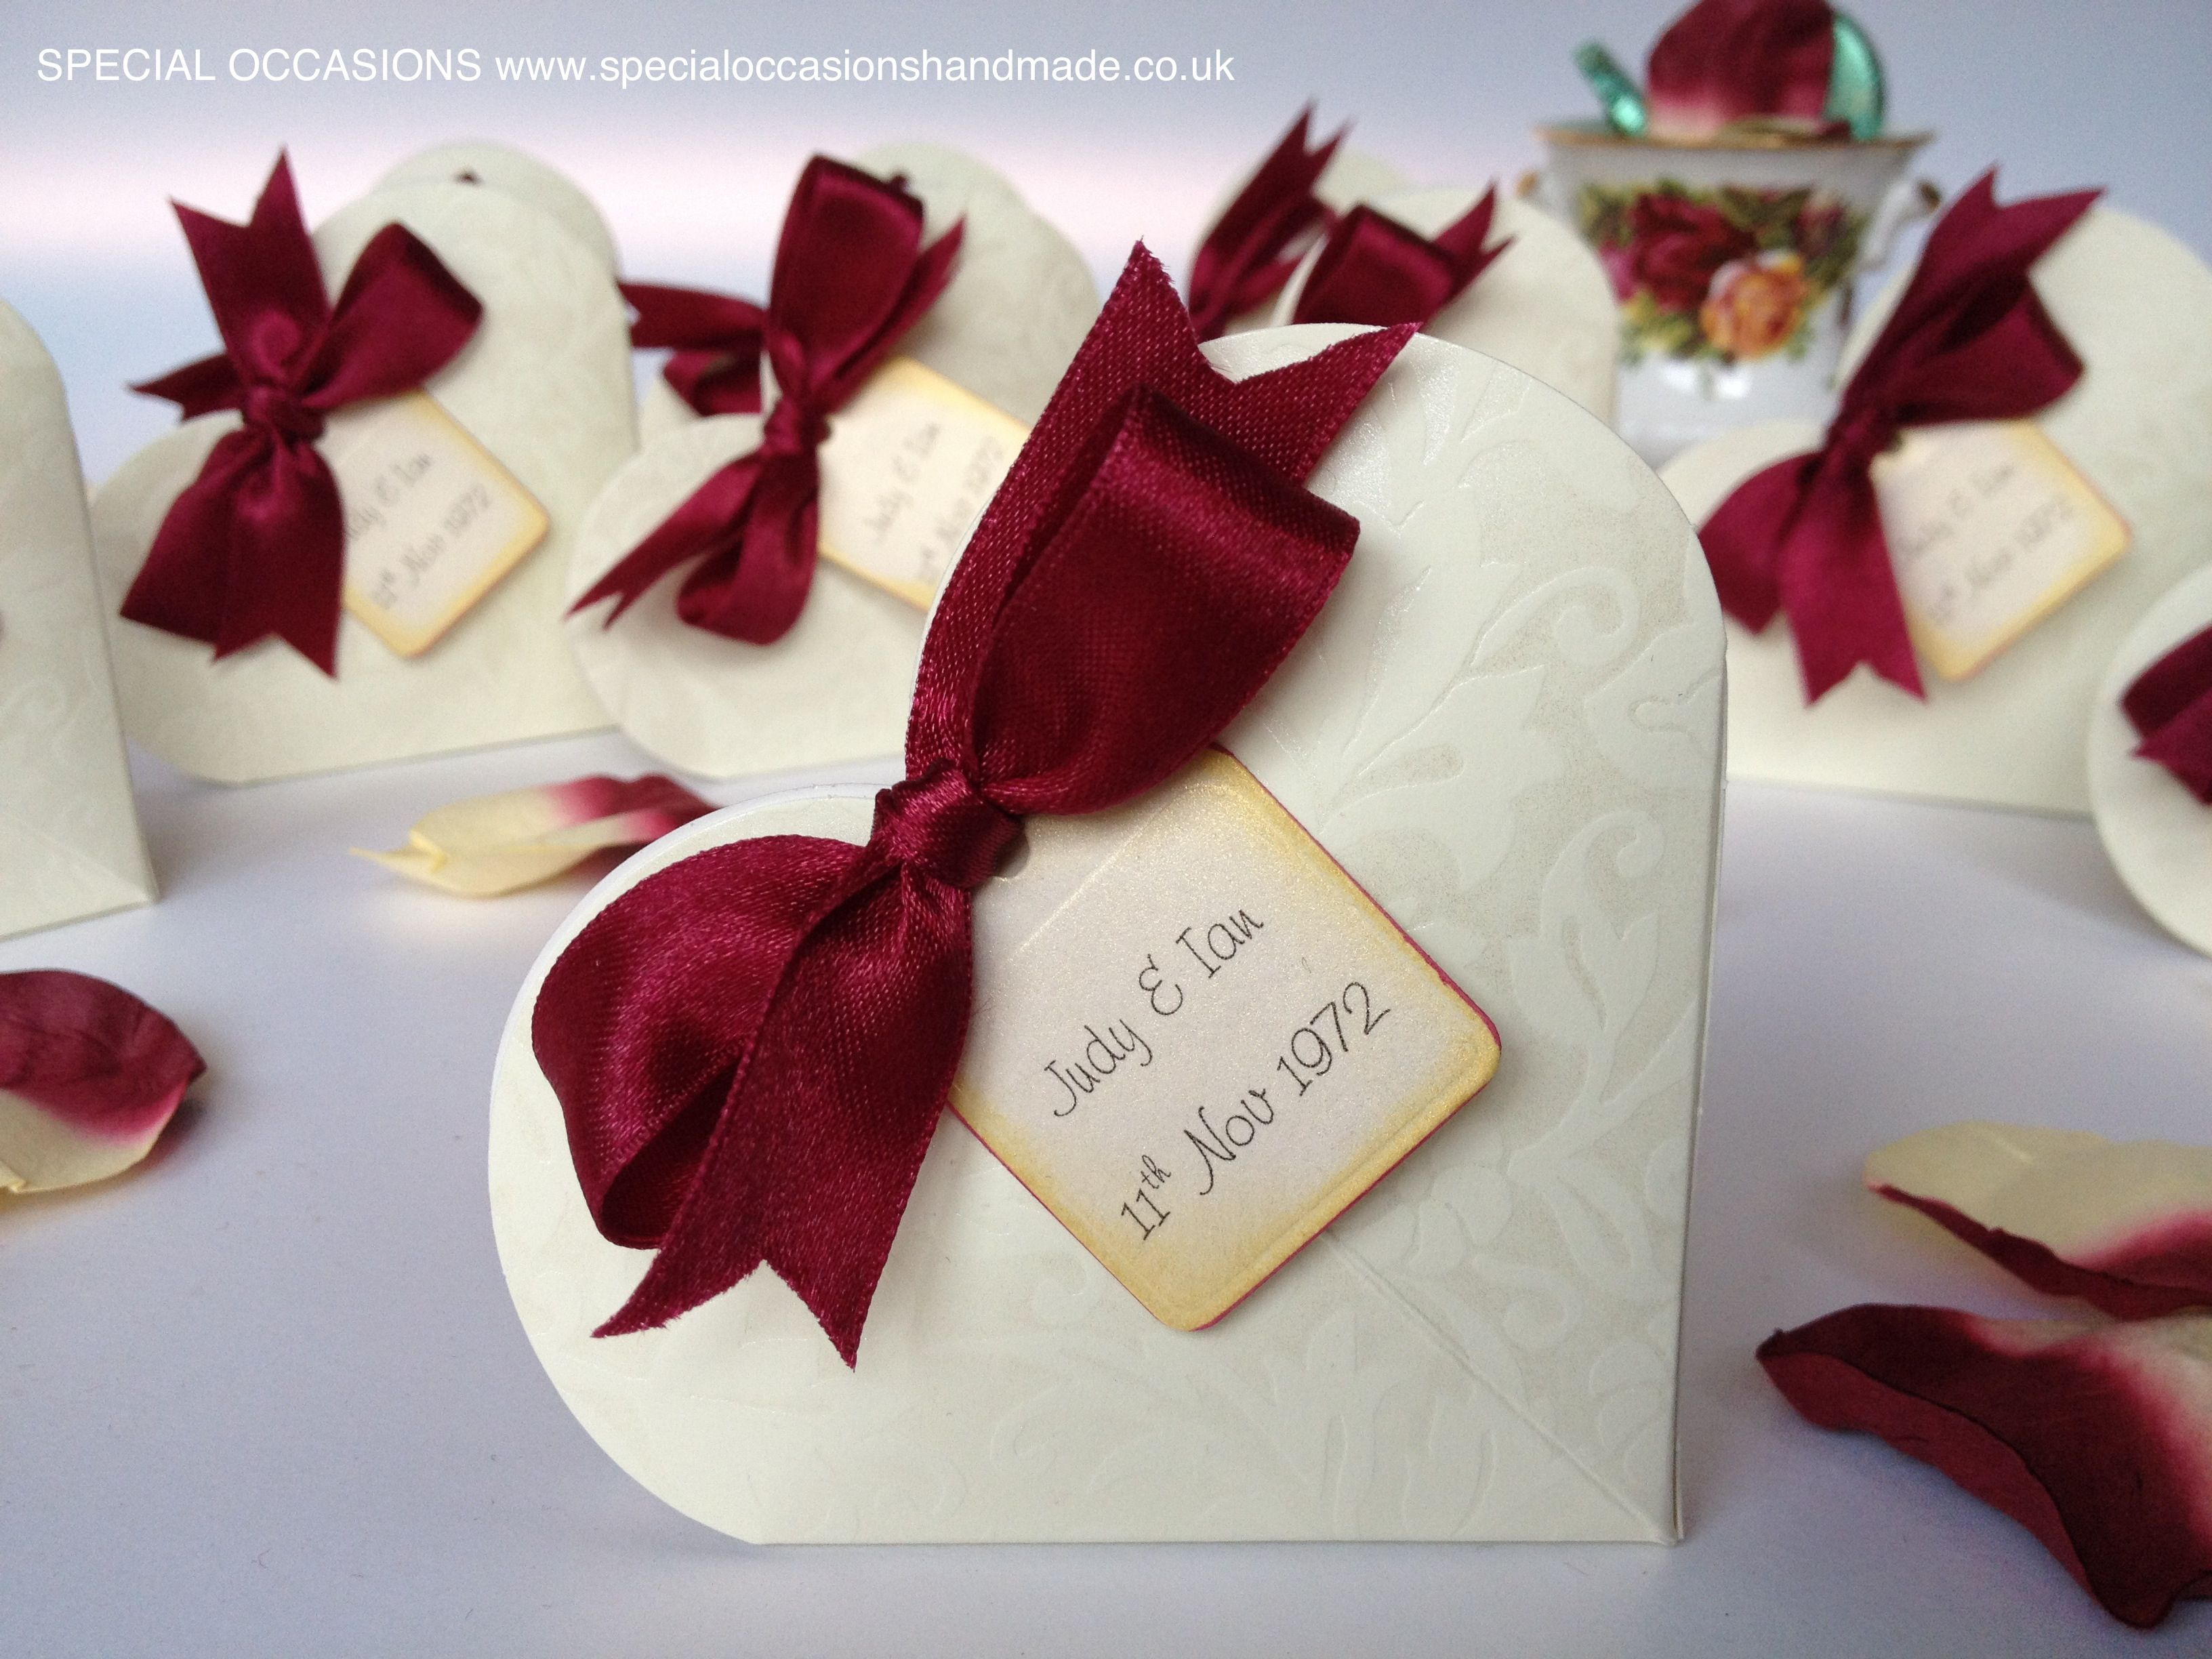 Ruby Wedding Gift Ideas For Parents Uk : Pinterest